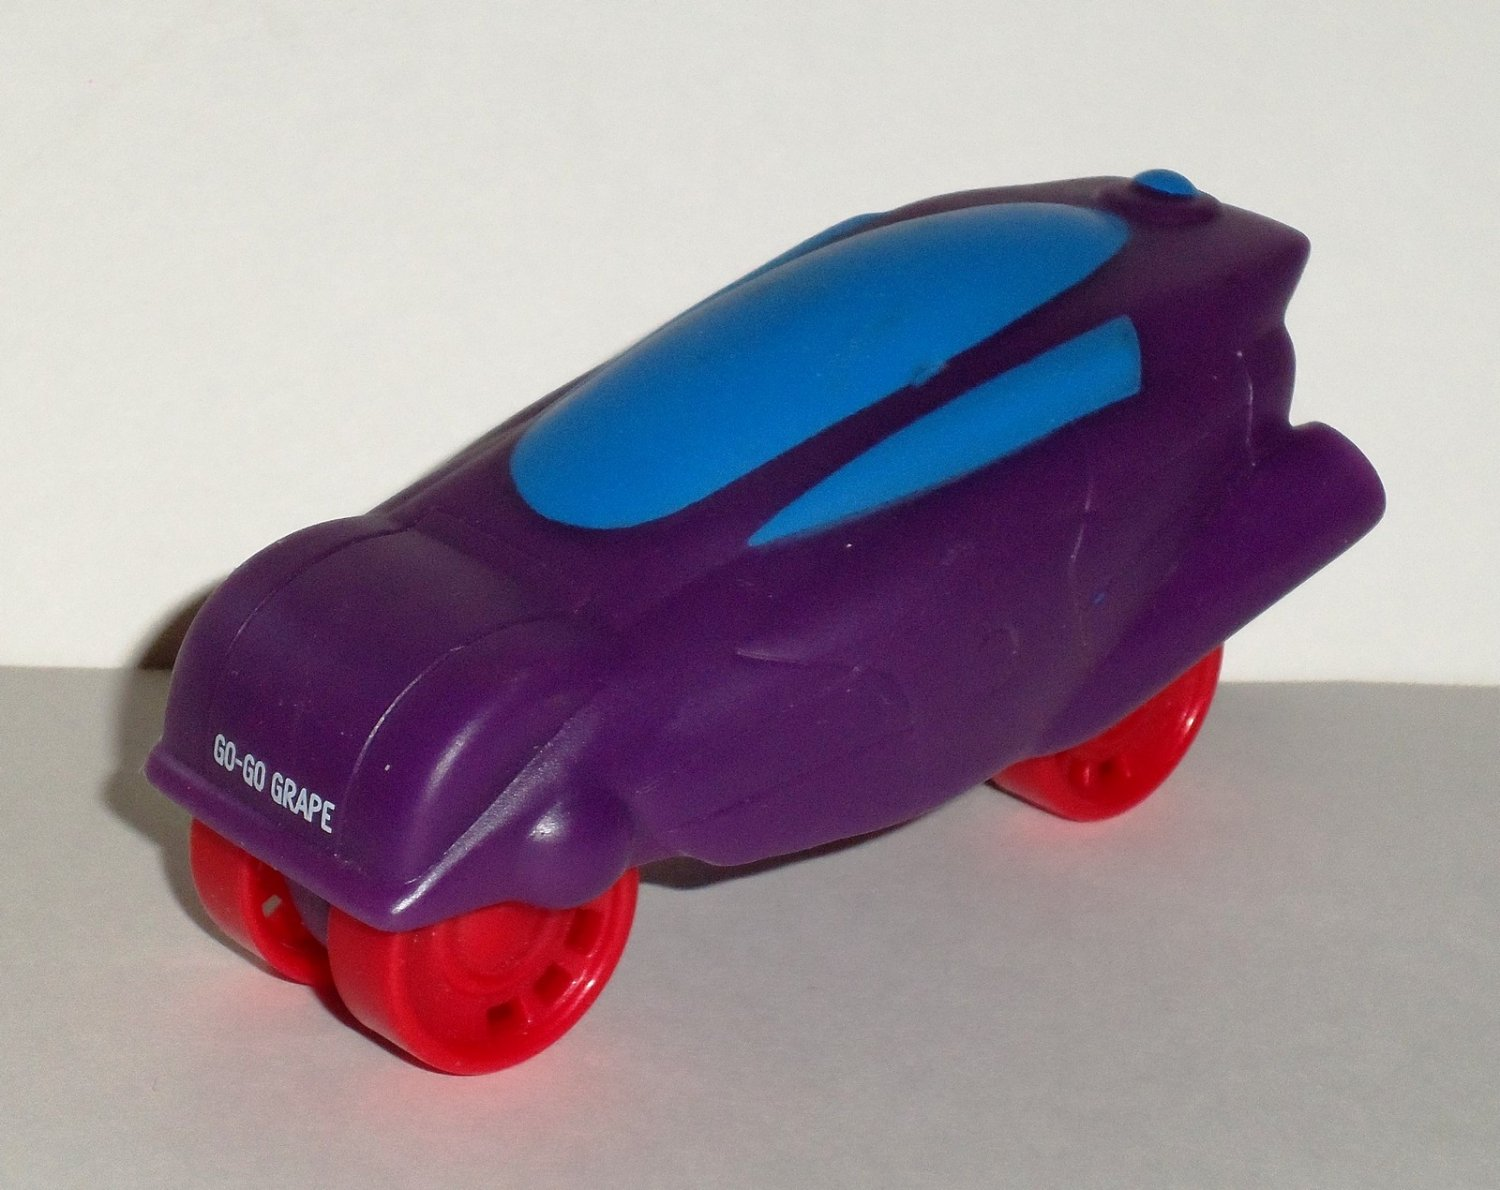 Sonic 2010 Tot Rod Tumblers Go-Go Grape Car Wacky Pack Kids Meal Toy Loose Used